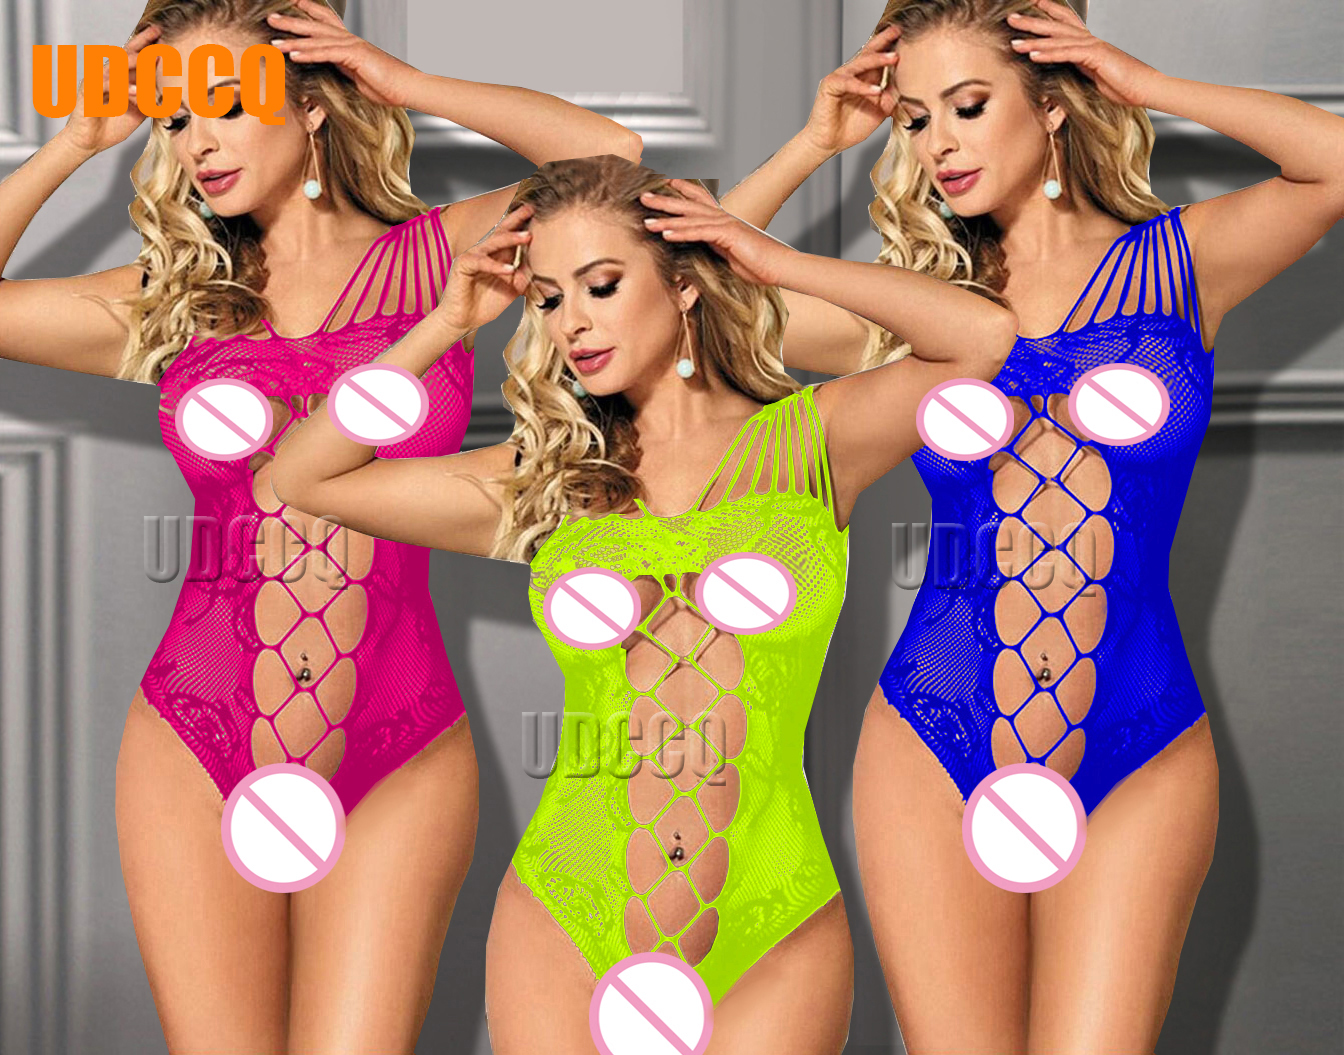 Sexy Sleepwear Lingerie Babydoll BODYSUIT Mesh Floral Body Stocking Temptation Teddy Catsuit Nightwear Product Erotic 8989